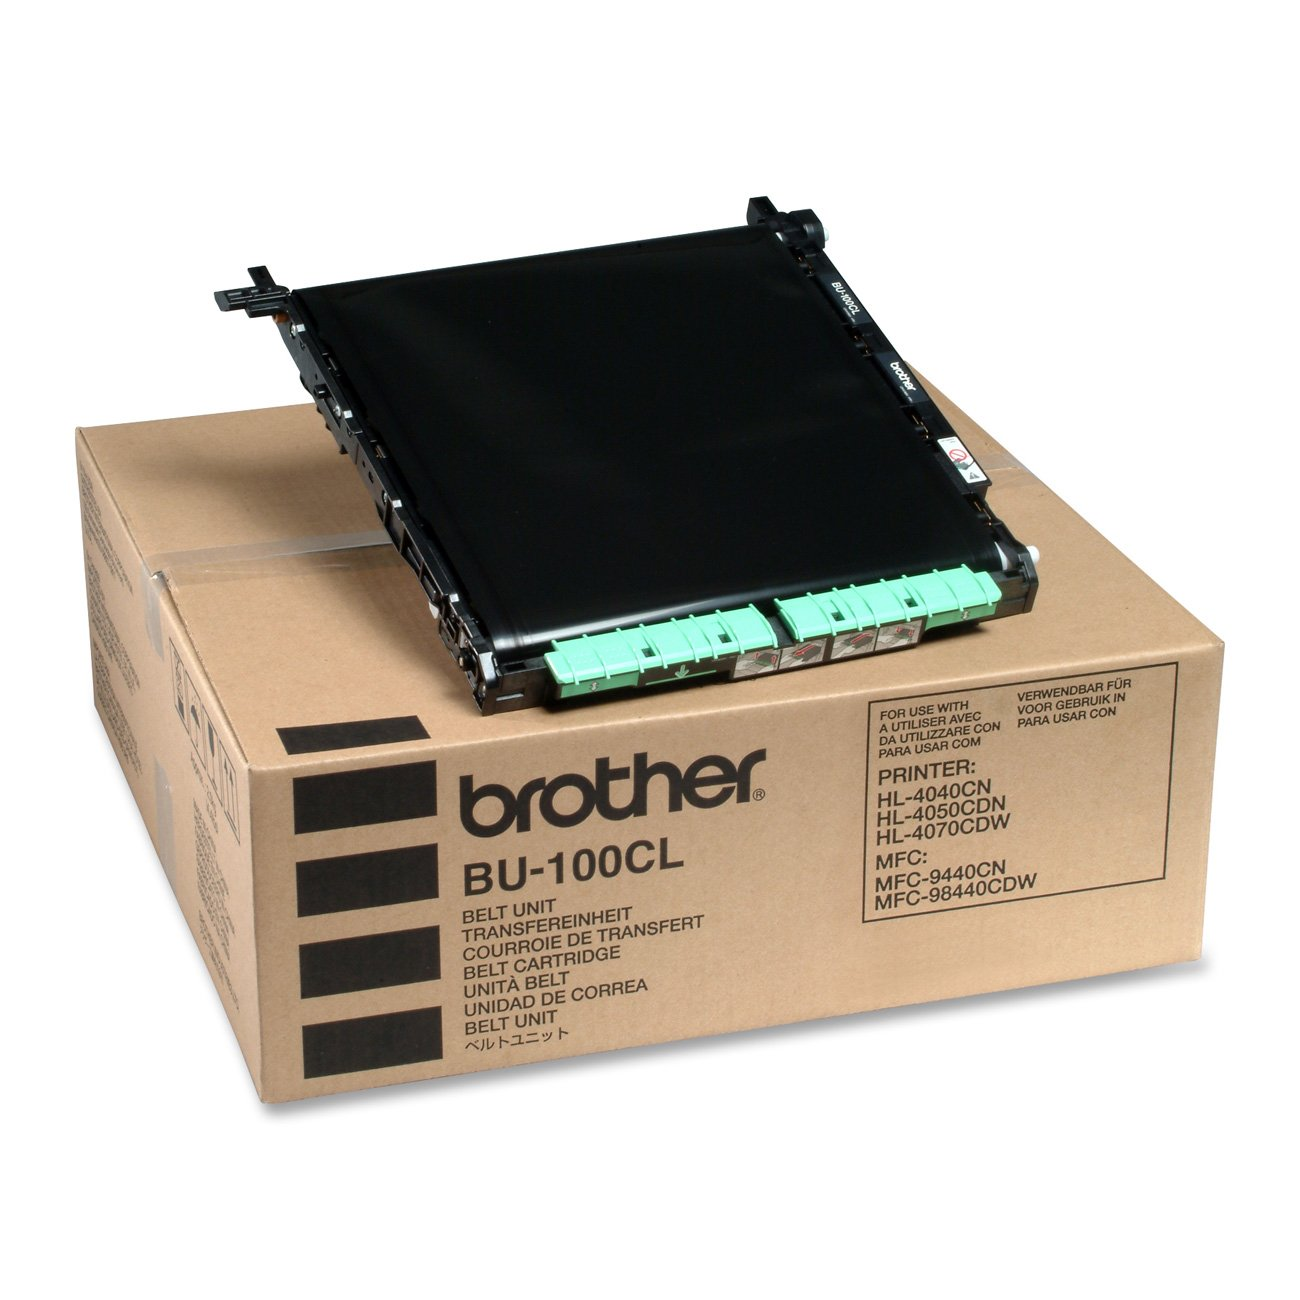 Color printing bu - Amazon Com Brother Bu 100cl Belt Unit For Hl 4040cn Hl 4070cdw Series Retail Packaging Electronics